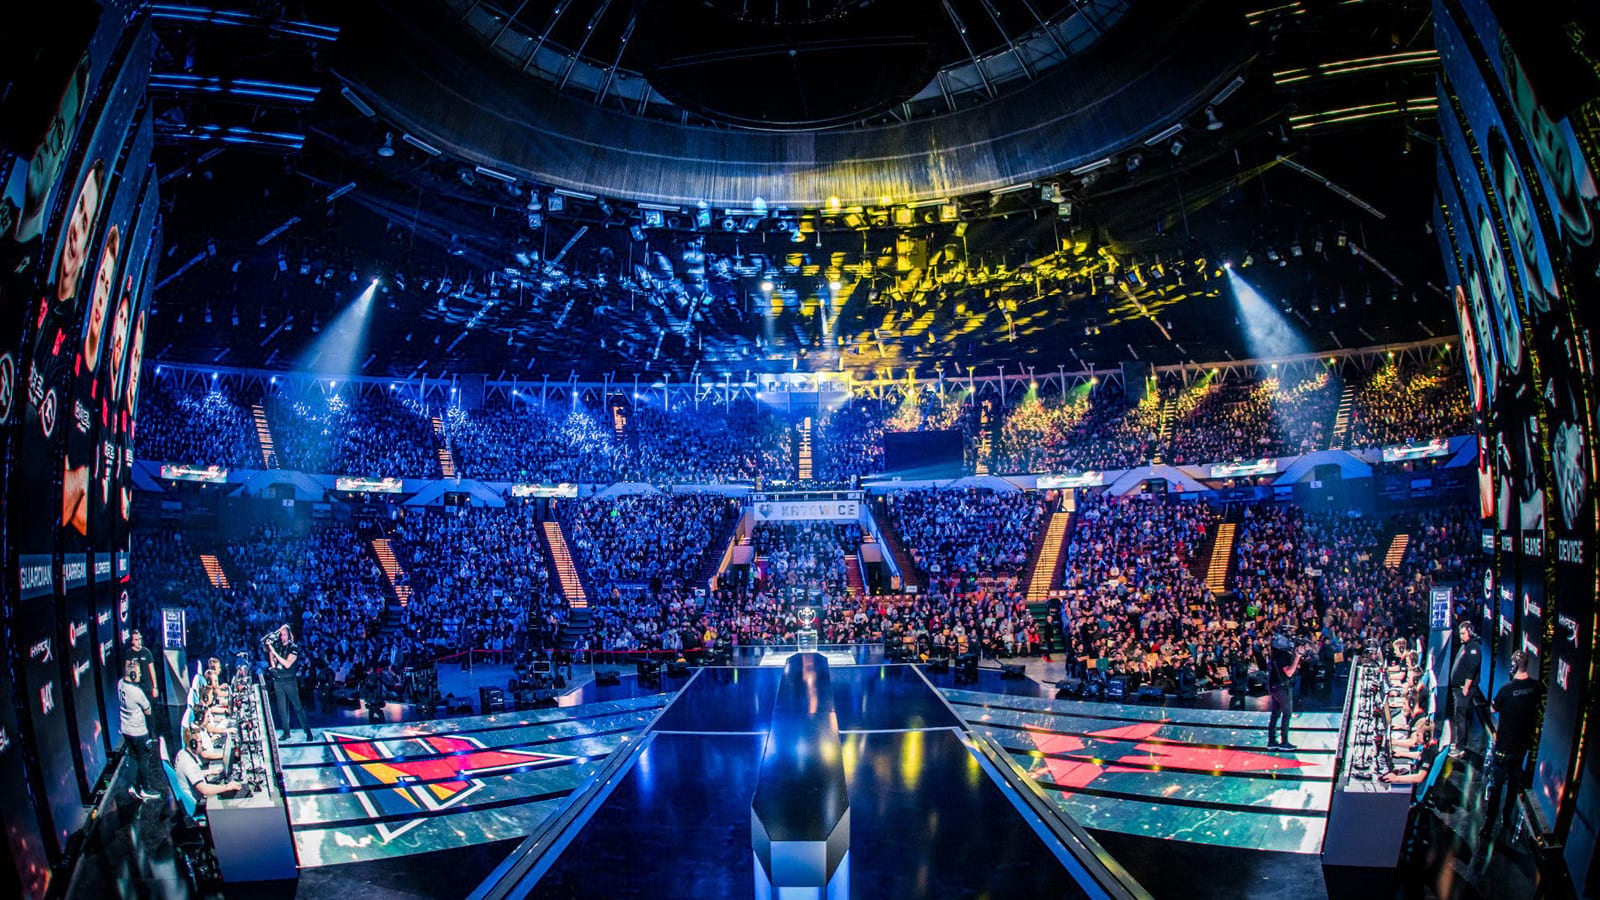 IEM Katowice crowd viewed from stage